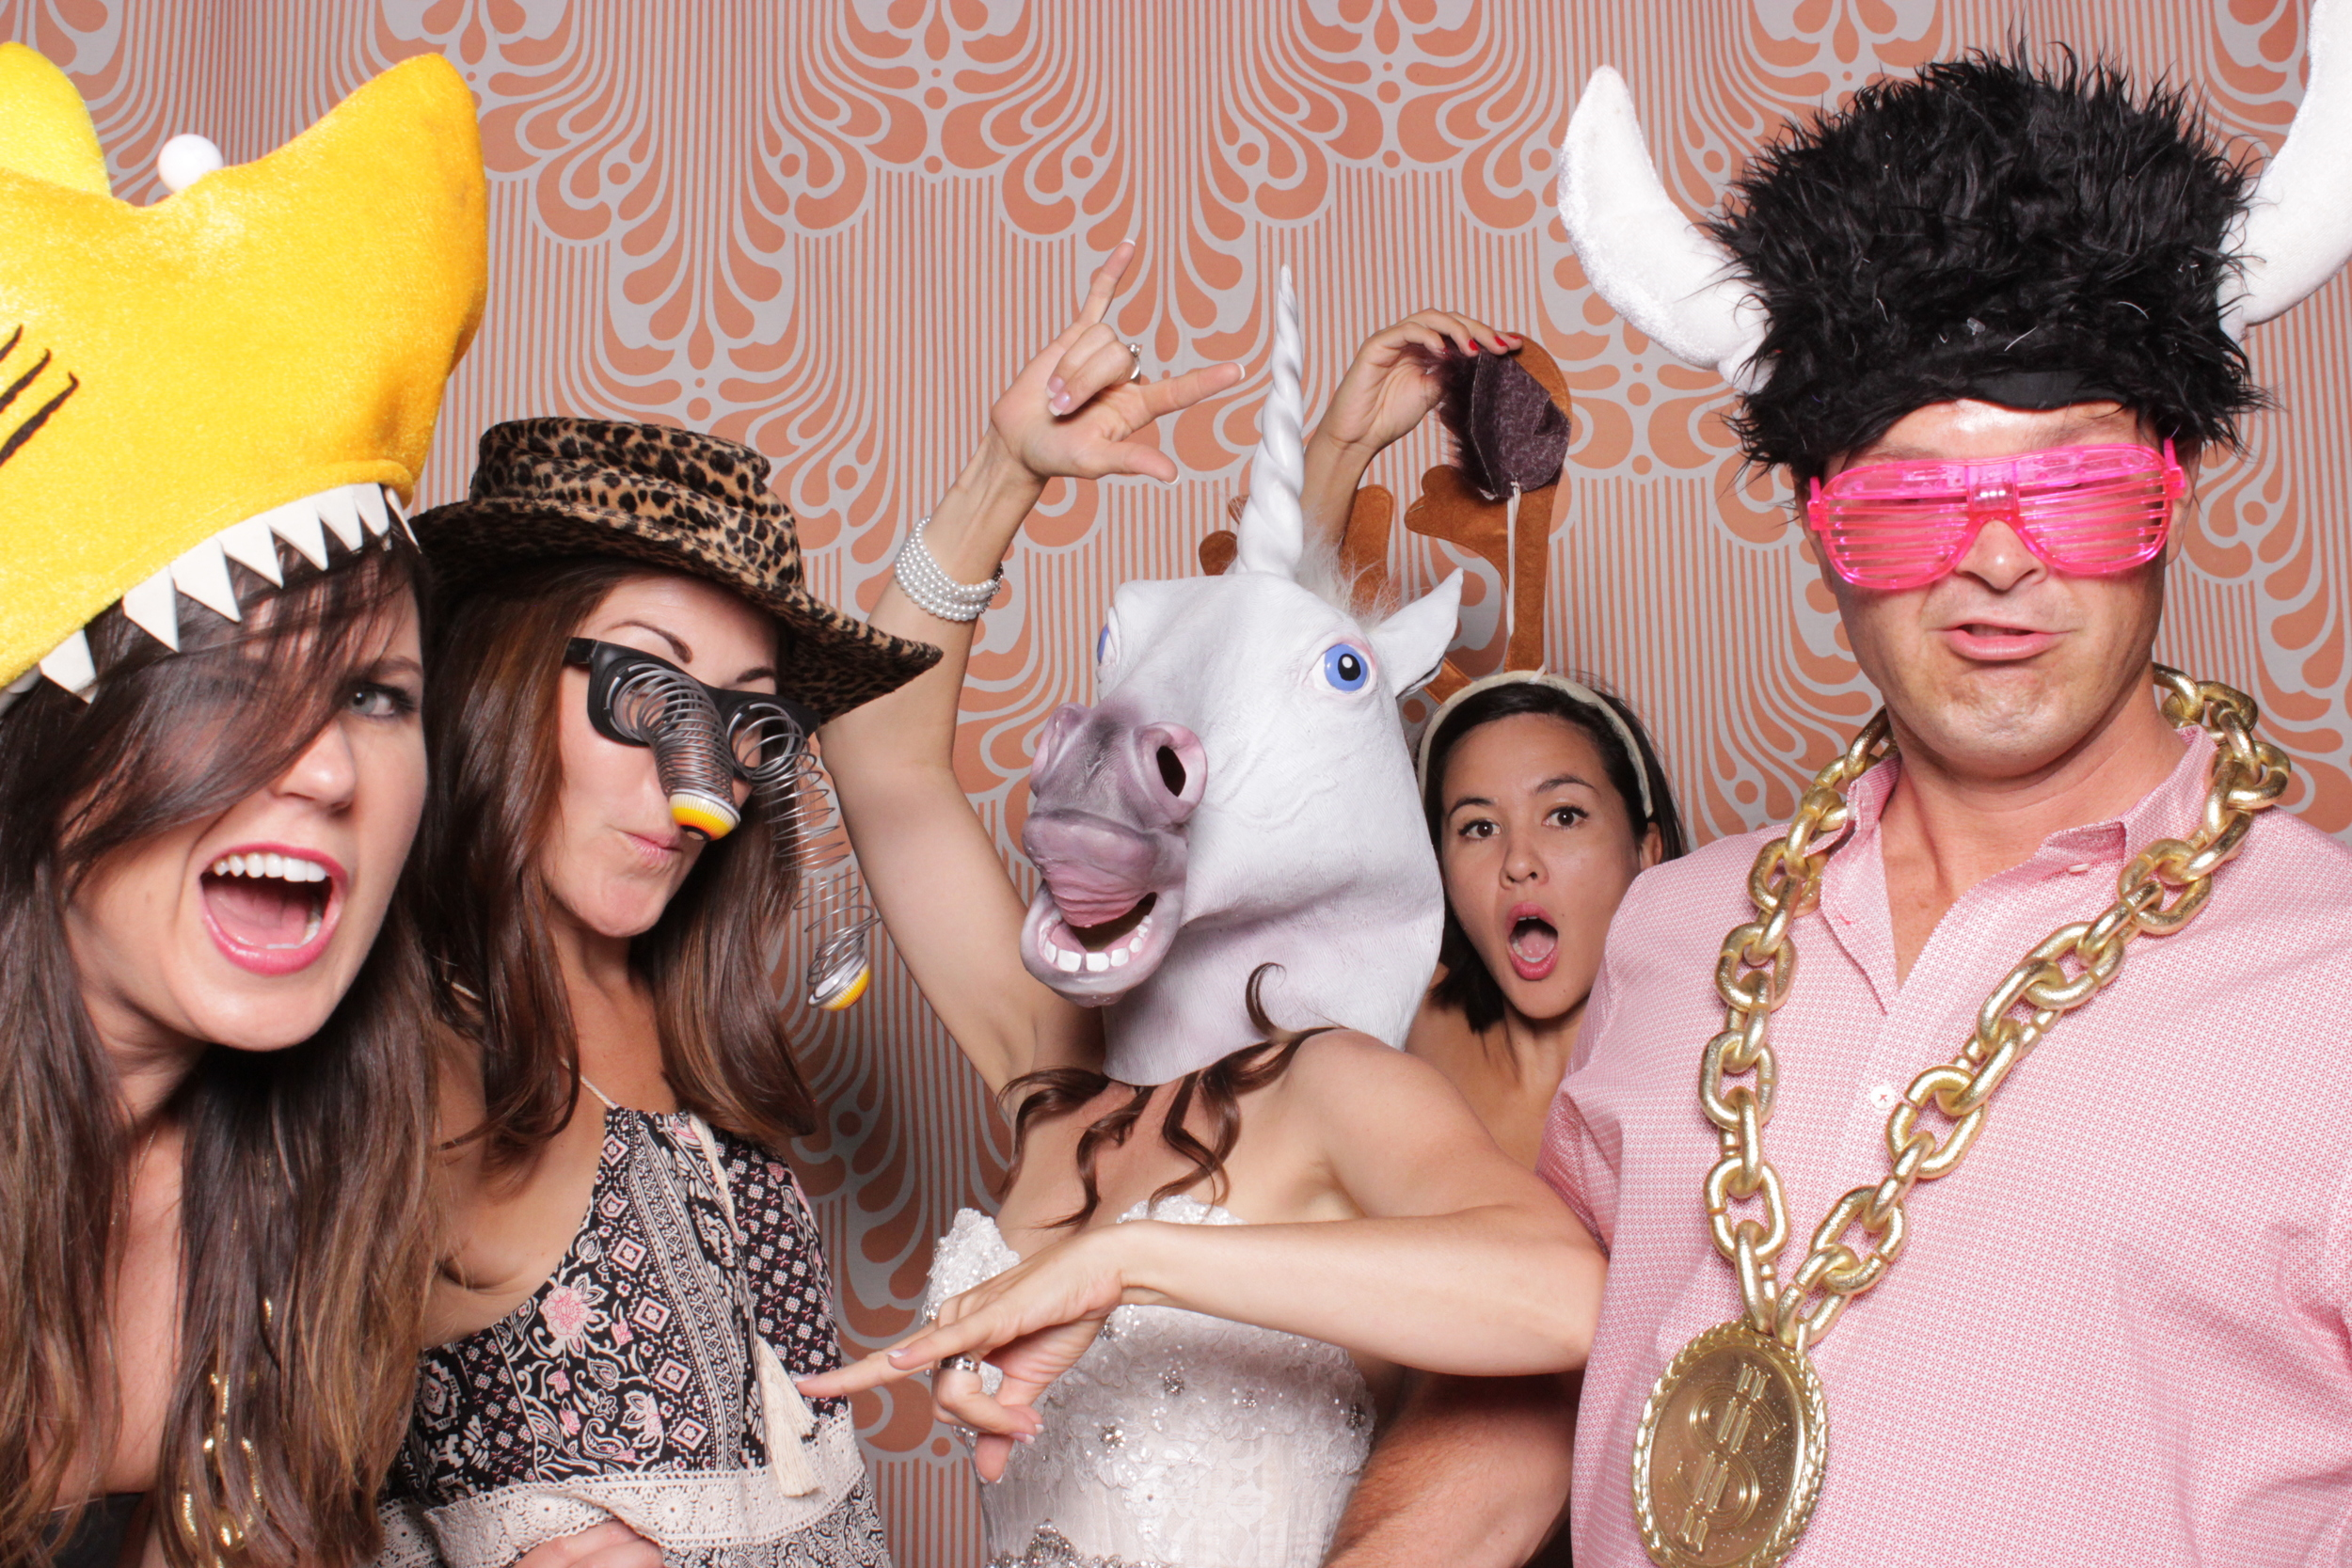 chico-photo-booth-rental-reception-guest-activities-gift